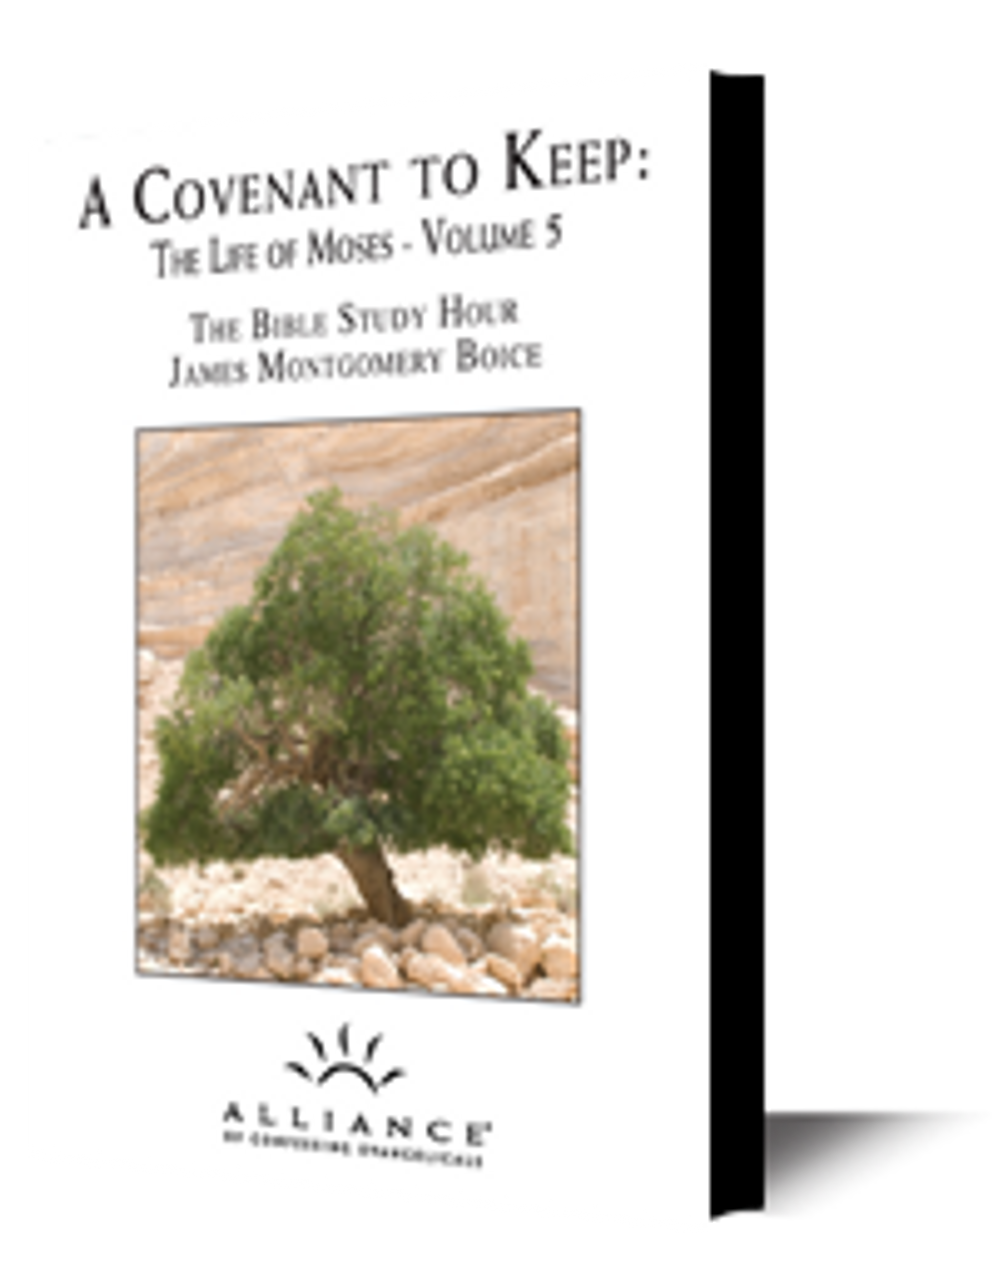 The Life of Moses, Volume 5: A Covenant to Keep (CD Set)